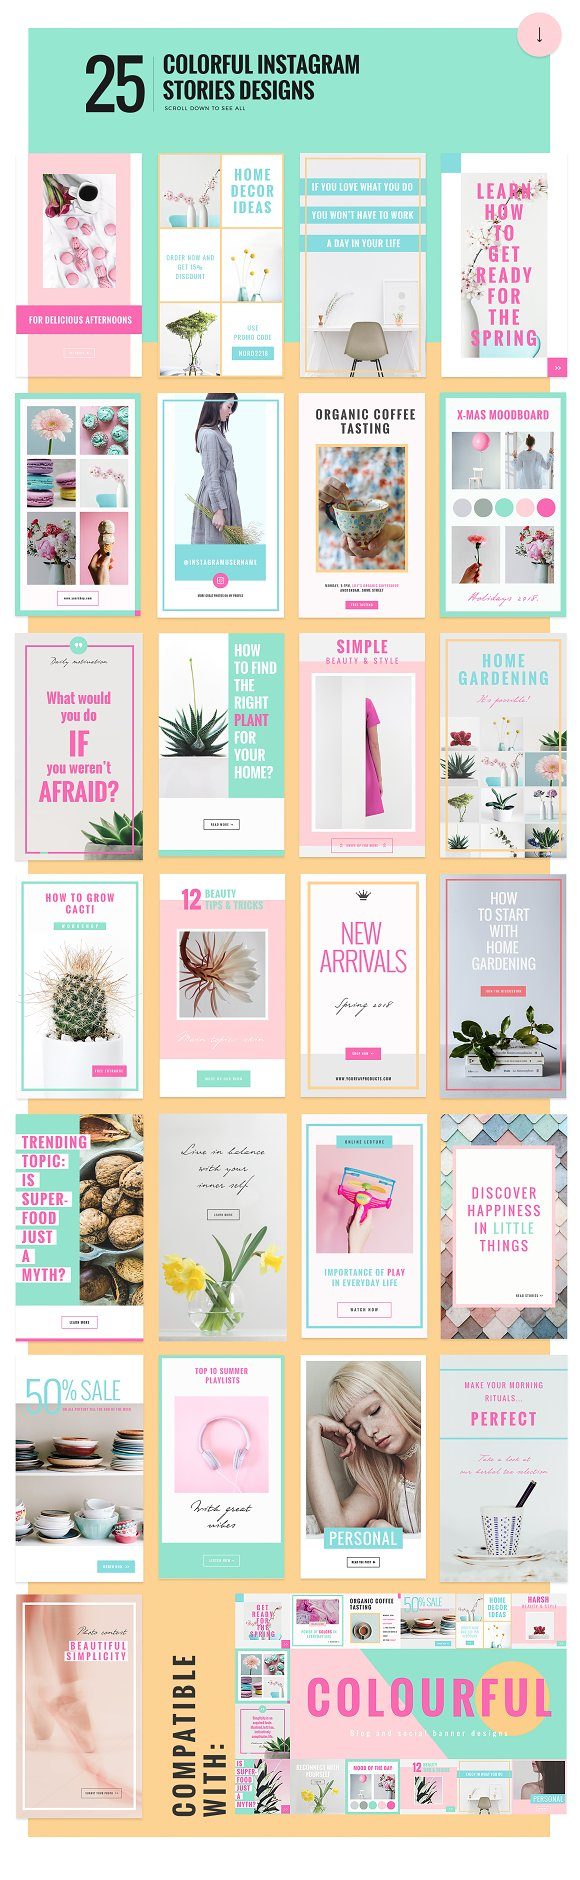 COLORFUL Instagram Stories in Instagram Templates - product preview 1